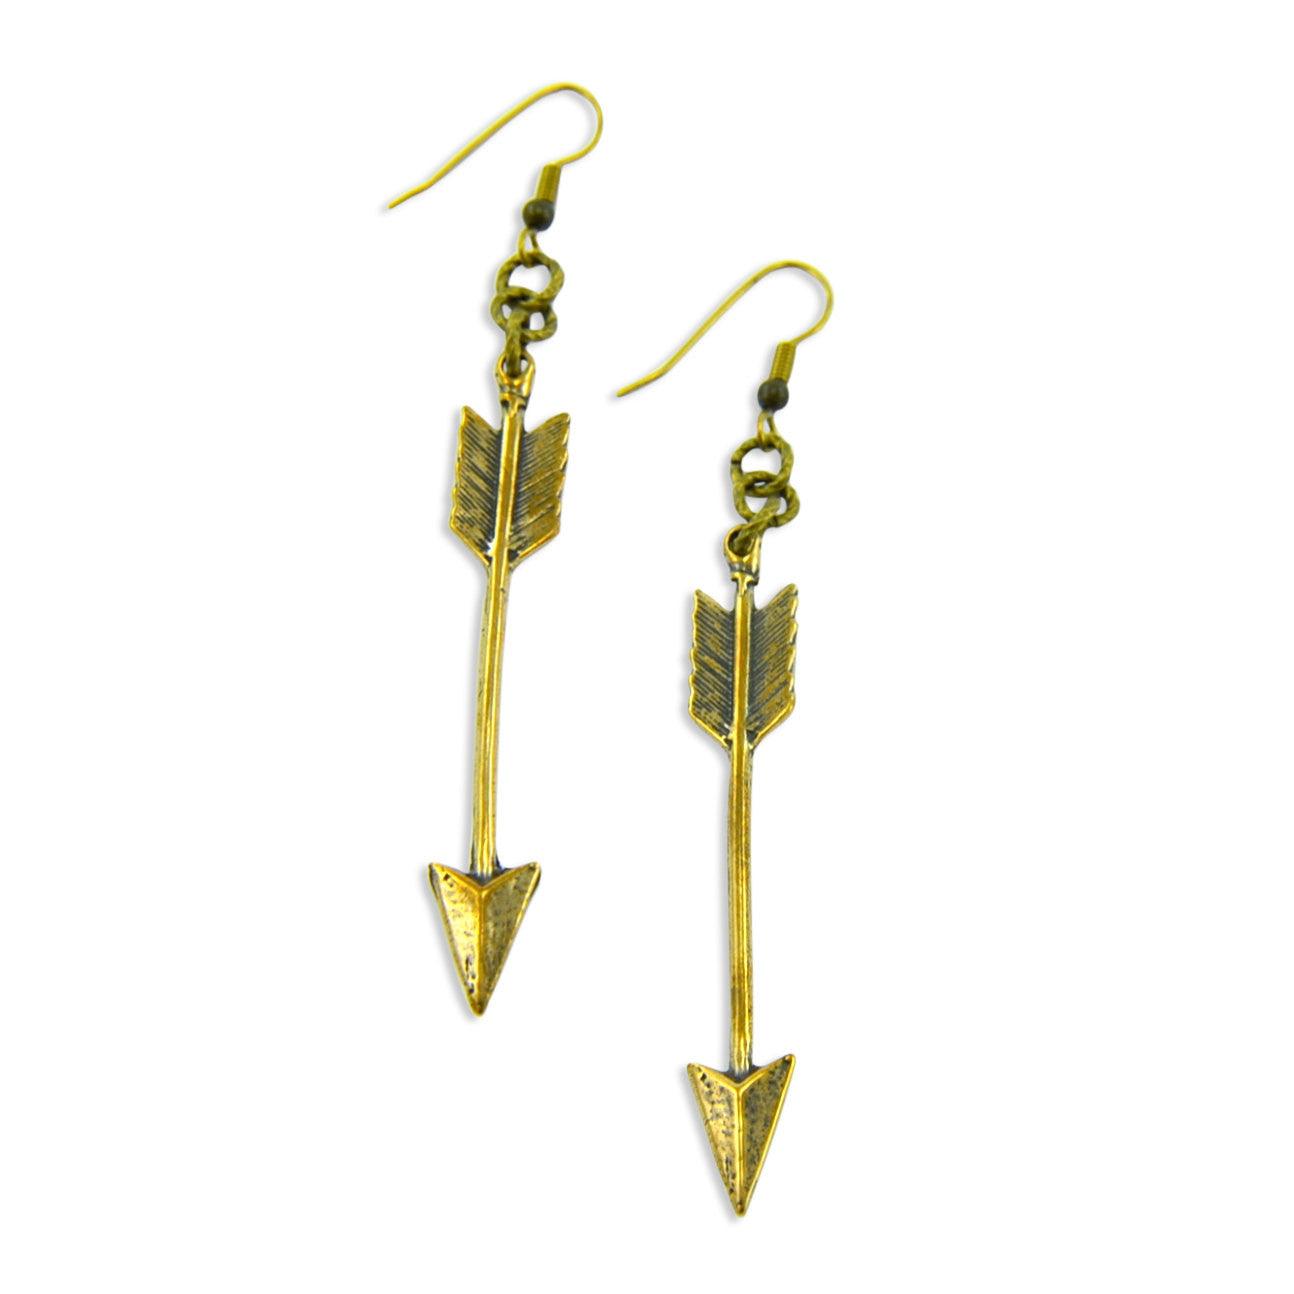 Arrow Earrings - Gwen Delicious Jewelry Designs